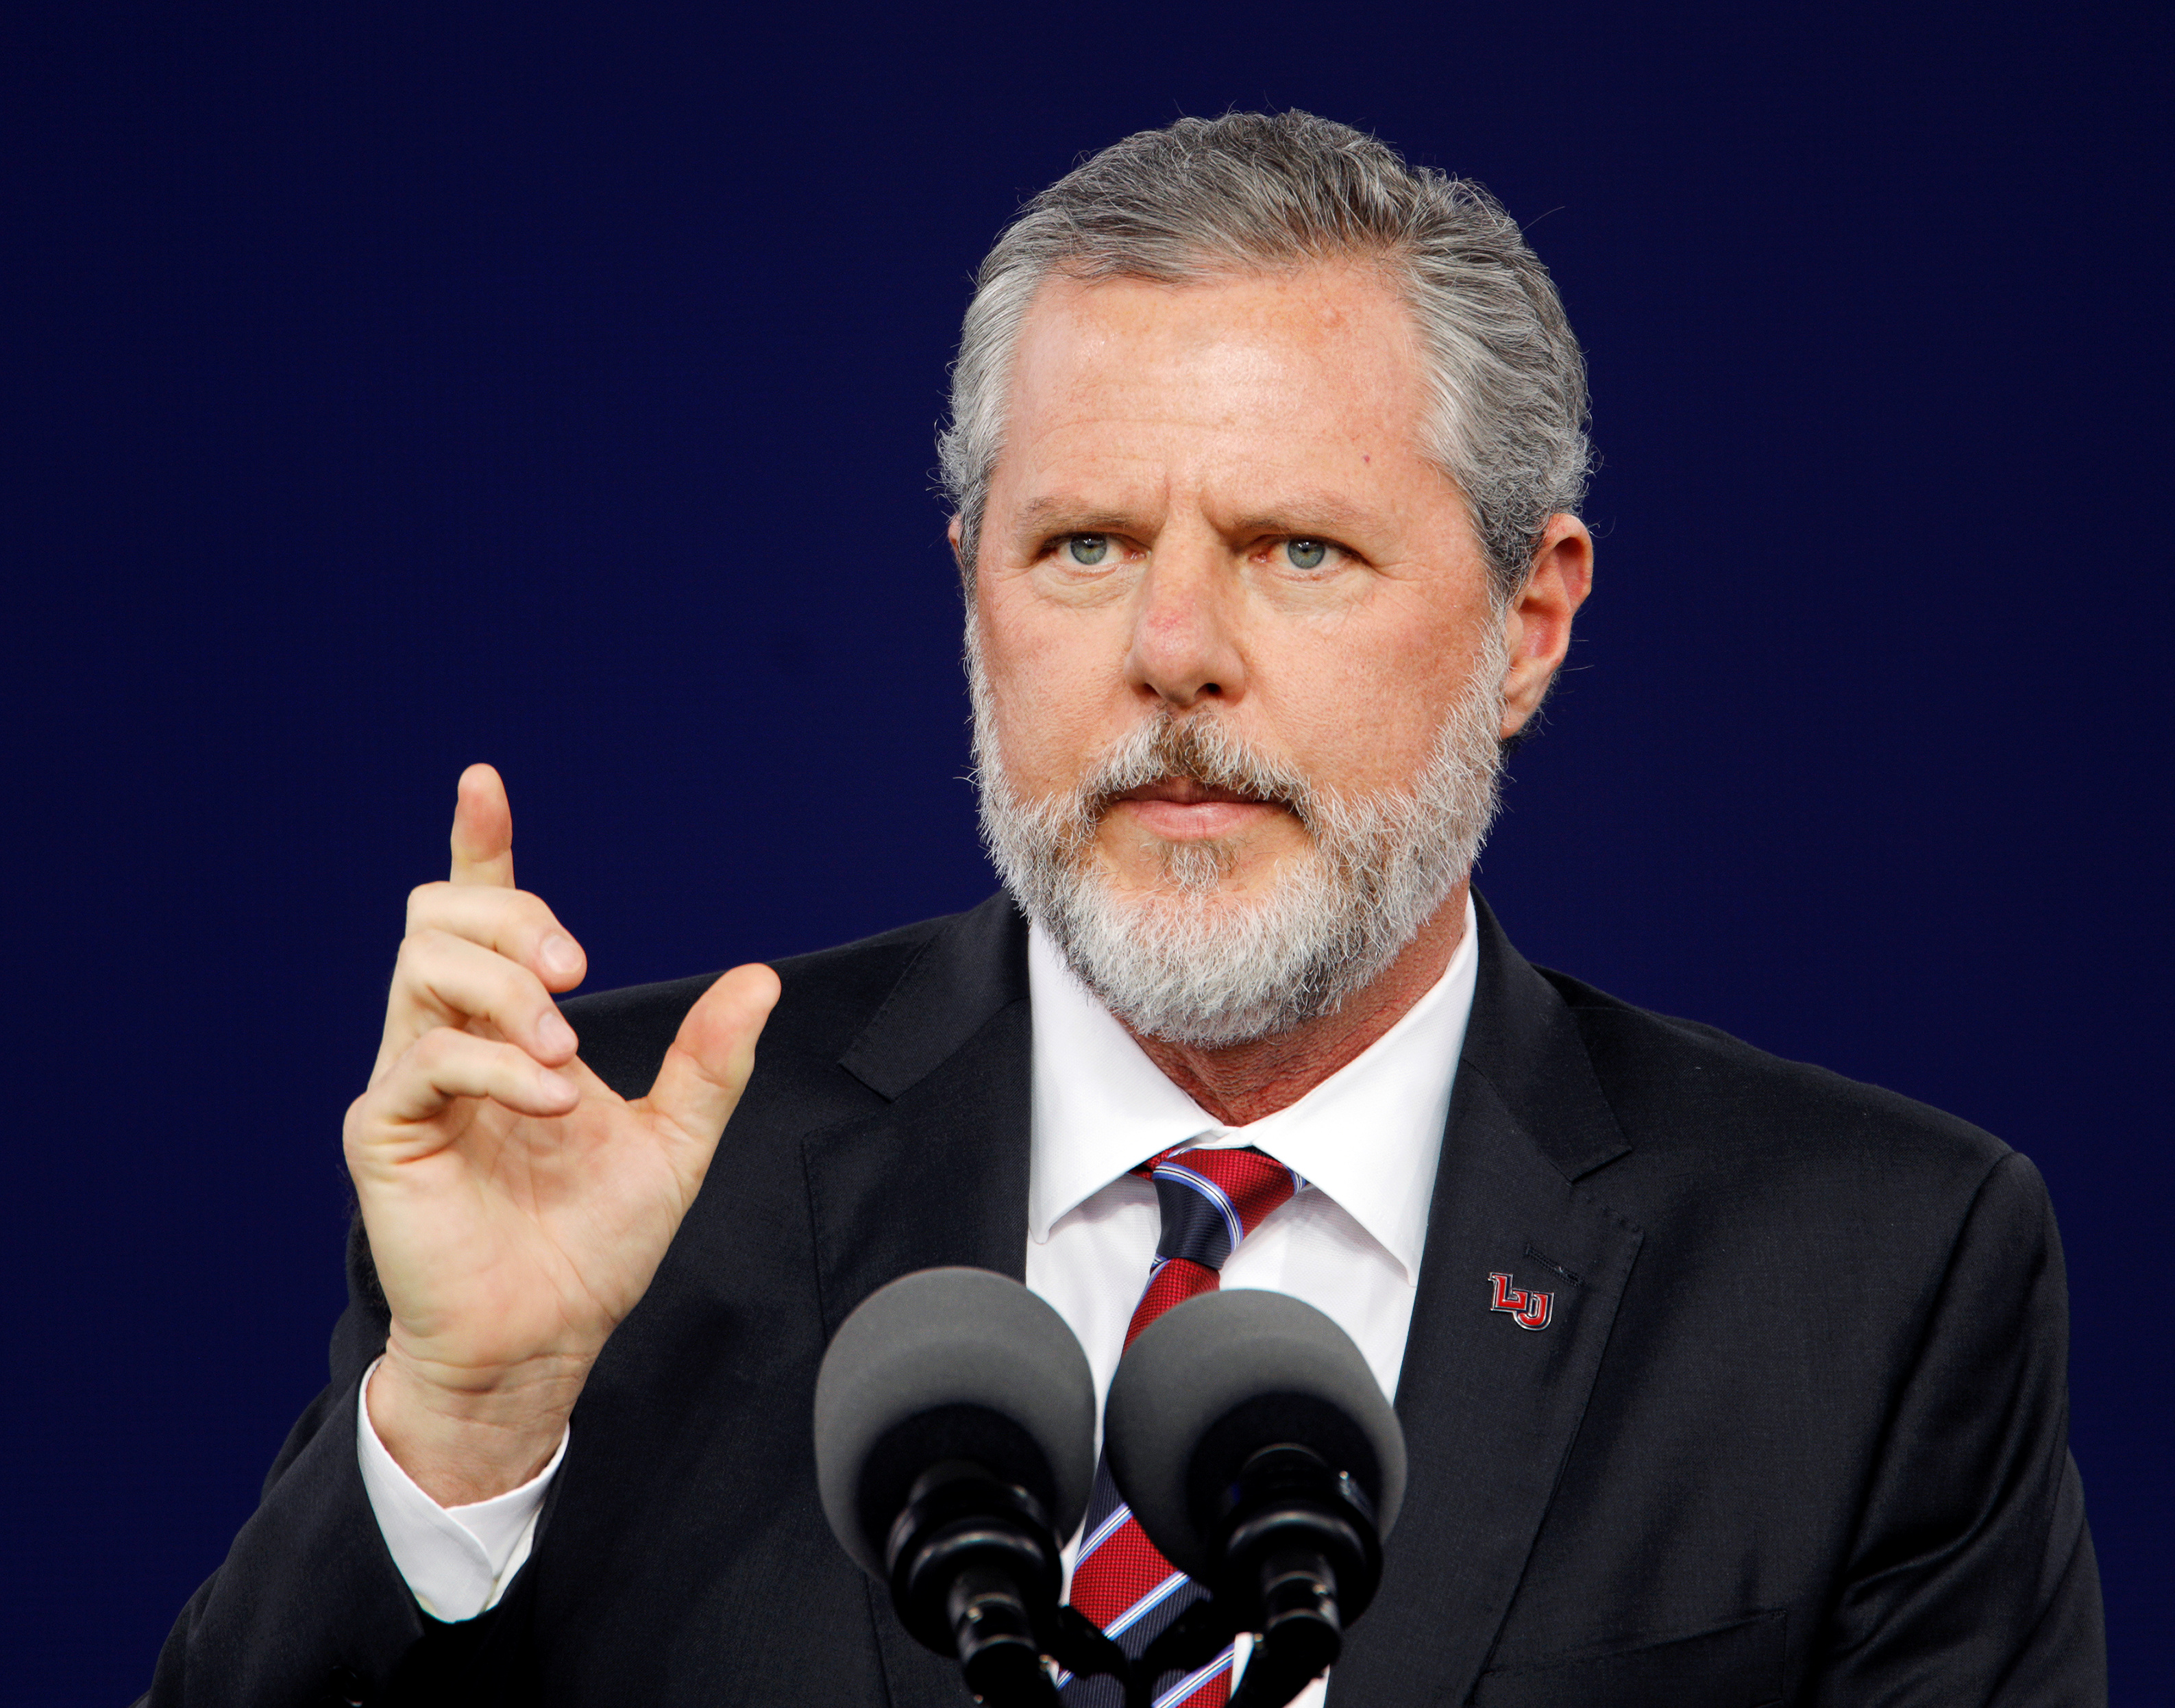 Exclusive: Falwell blasted Liberty student as retarded, police chief as half-wit in emails